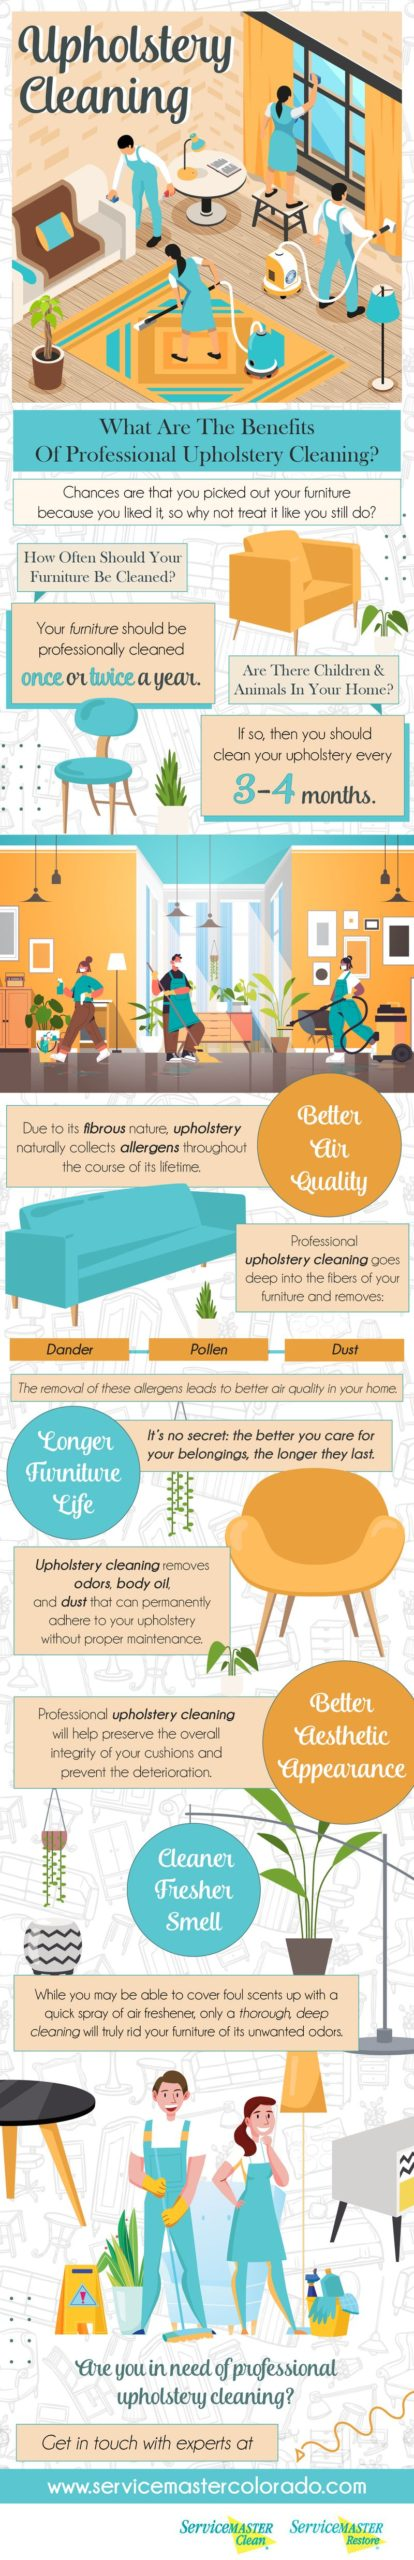 Upholstery Cleaning: What Are The Benefits Of Professional Upholstery Cleaning?